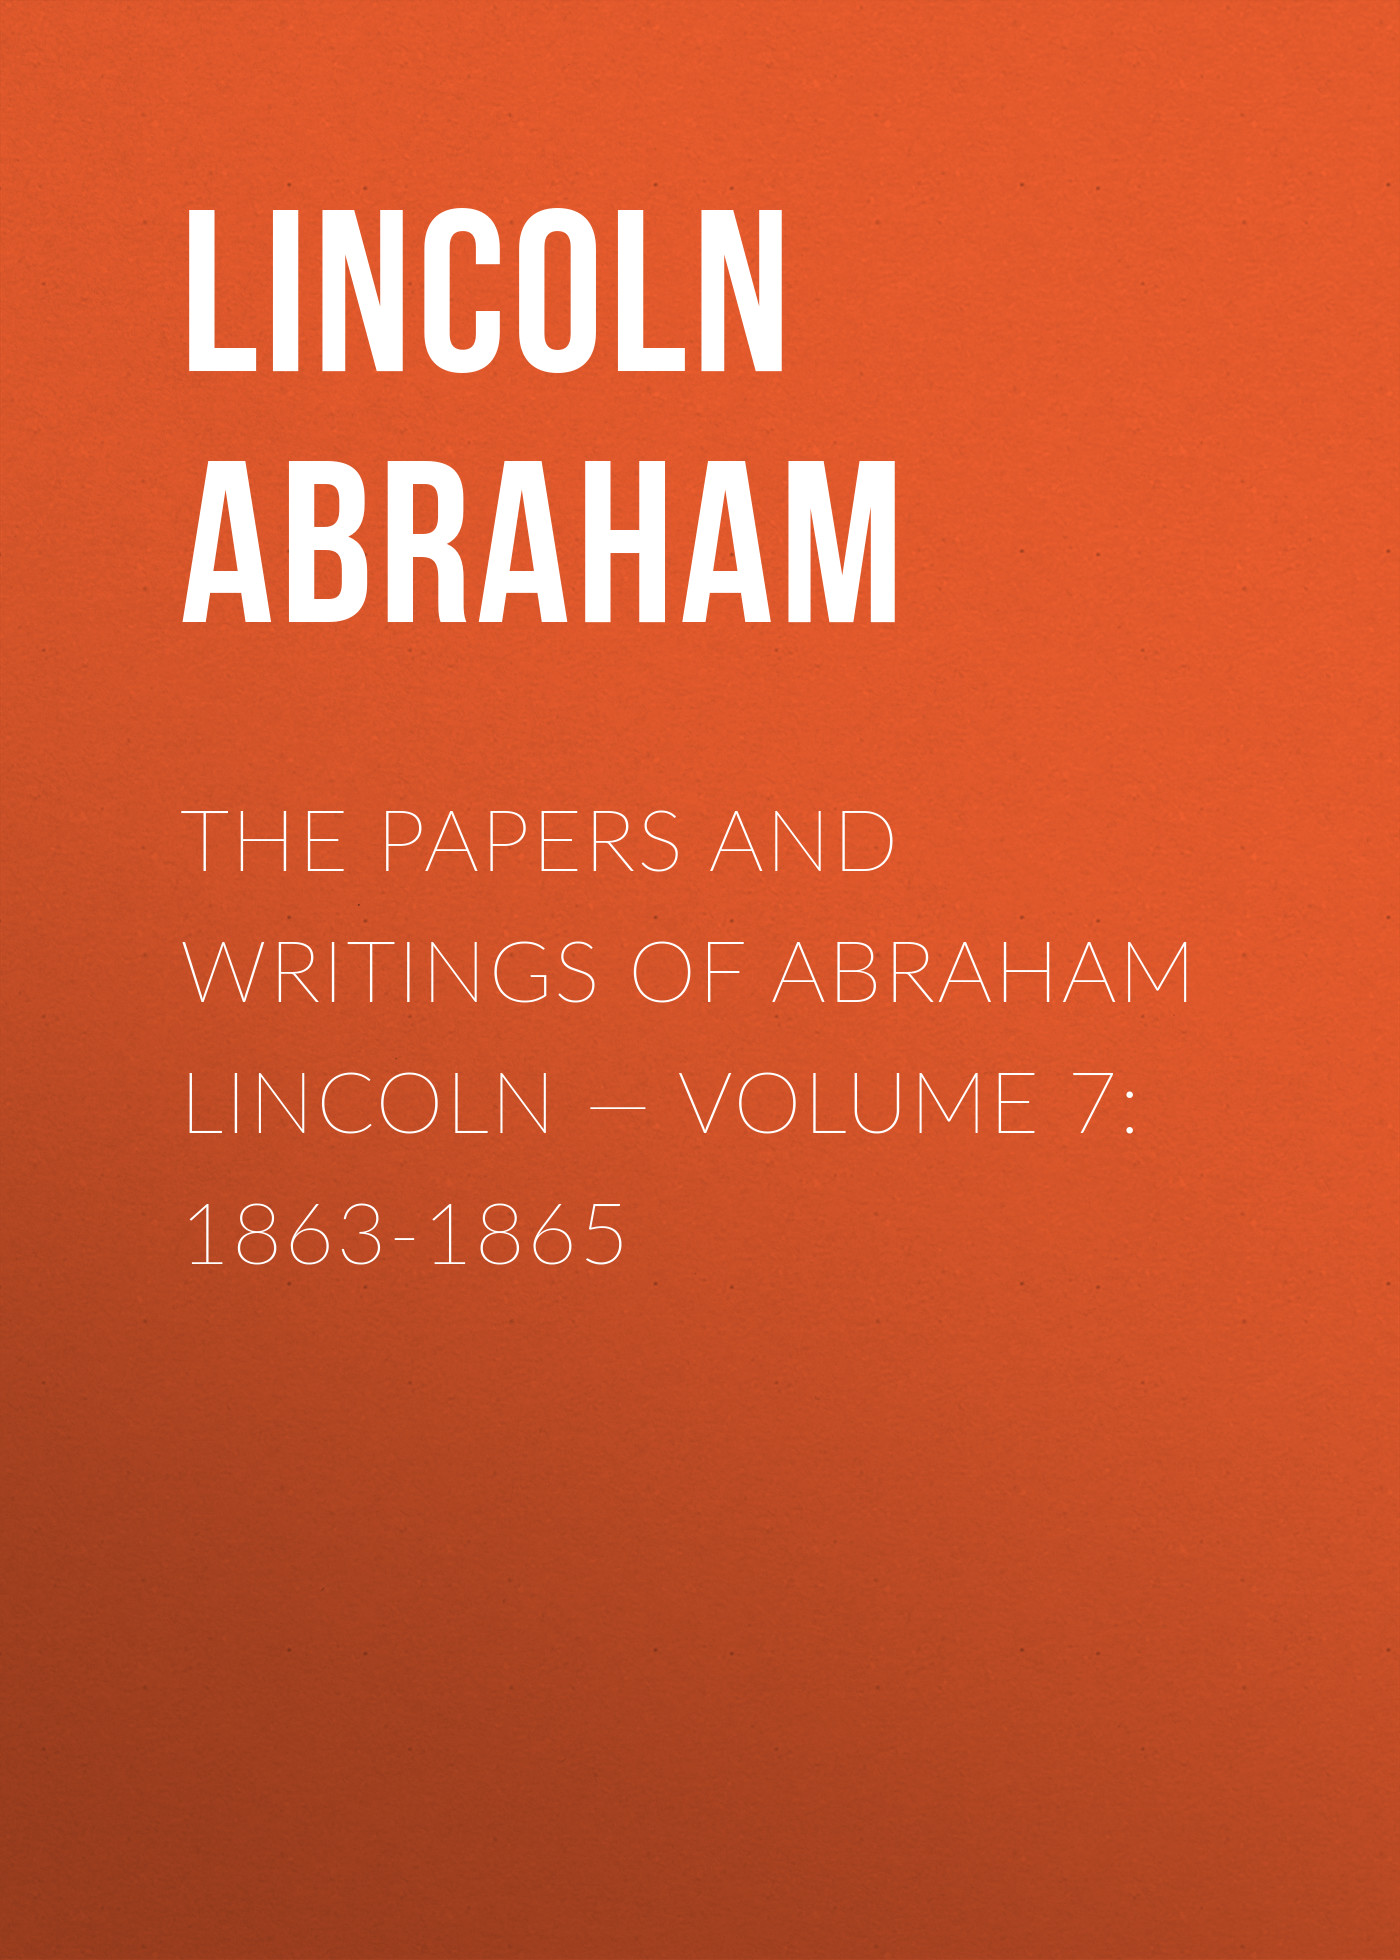 Lincoln Abraham The Papers And Writings Of Abraham Lincoln — Volume 7: 1863-1865 grahame smith s abraham lincoln vampire hunter